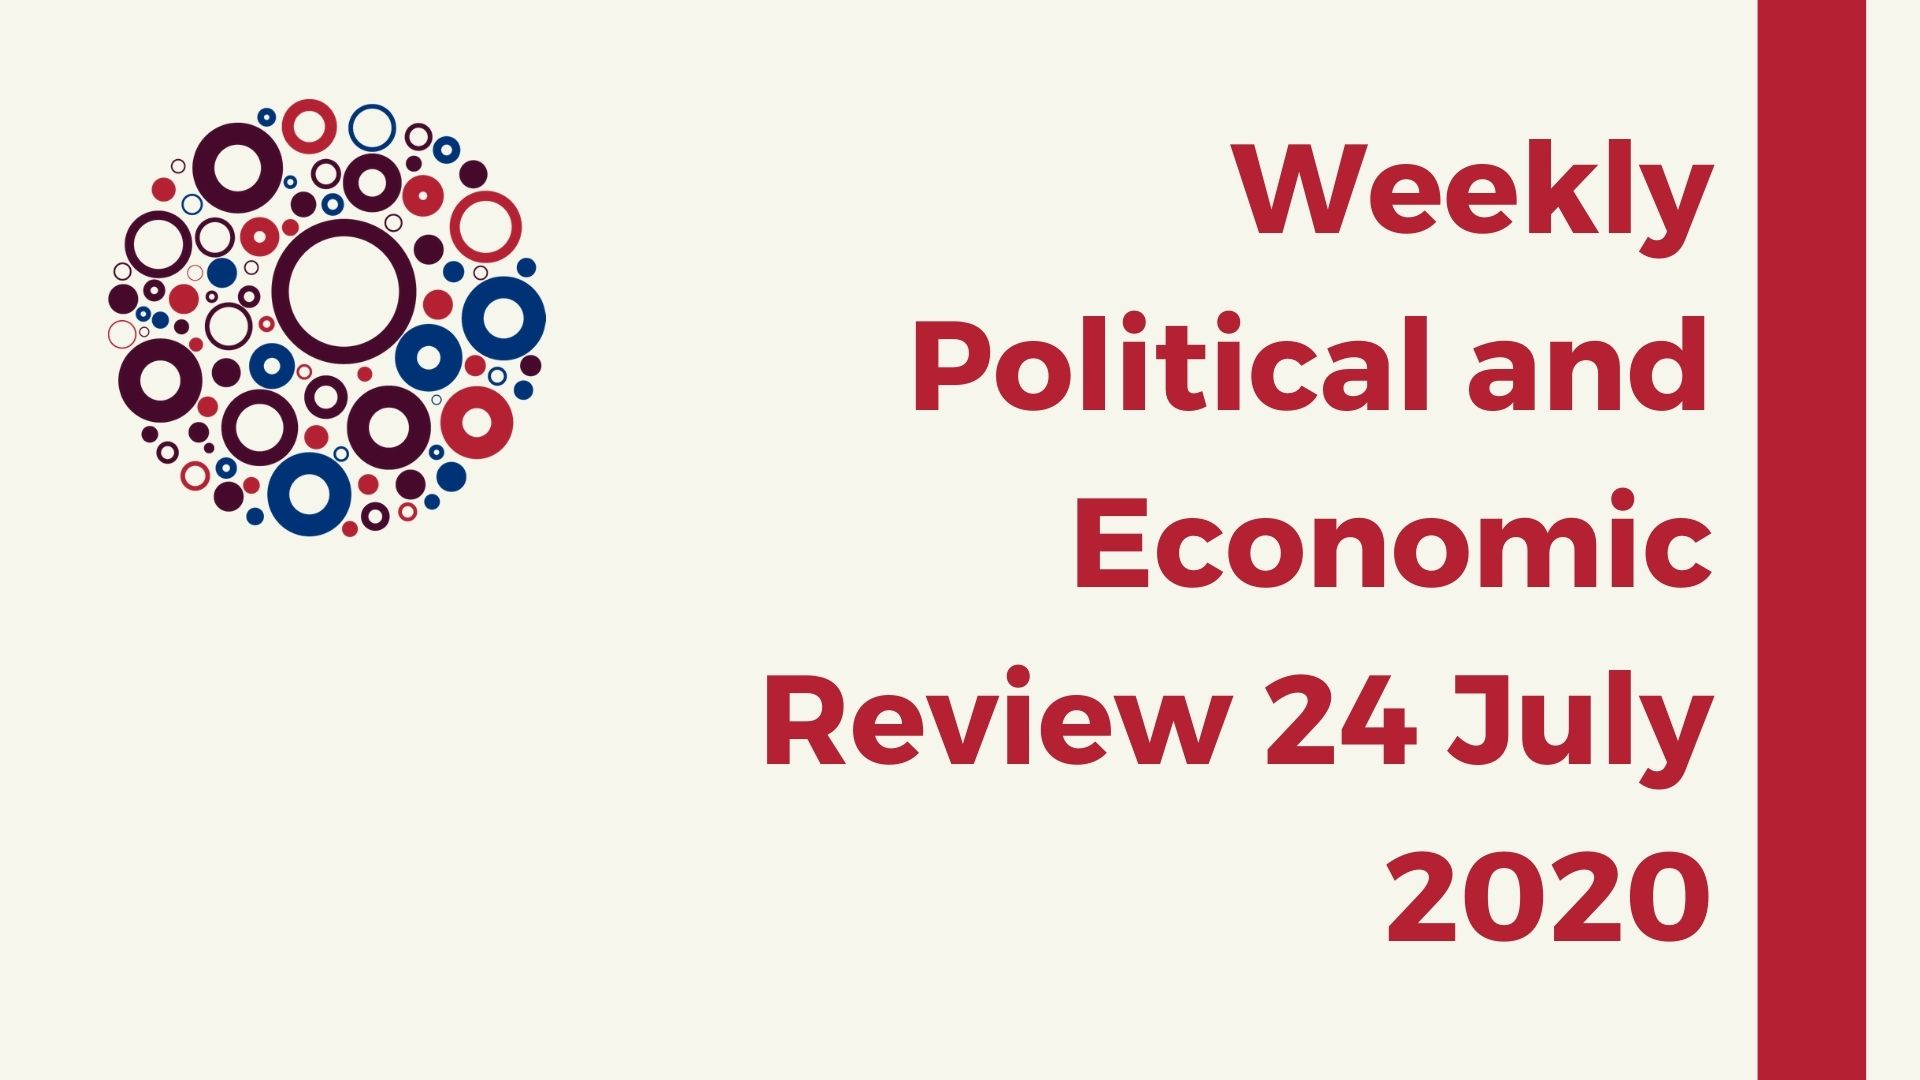 Weekly Political and Economic Review 24 July 2020